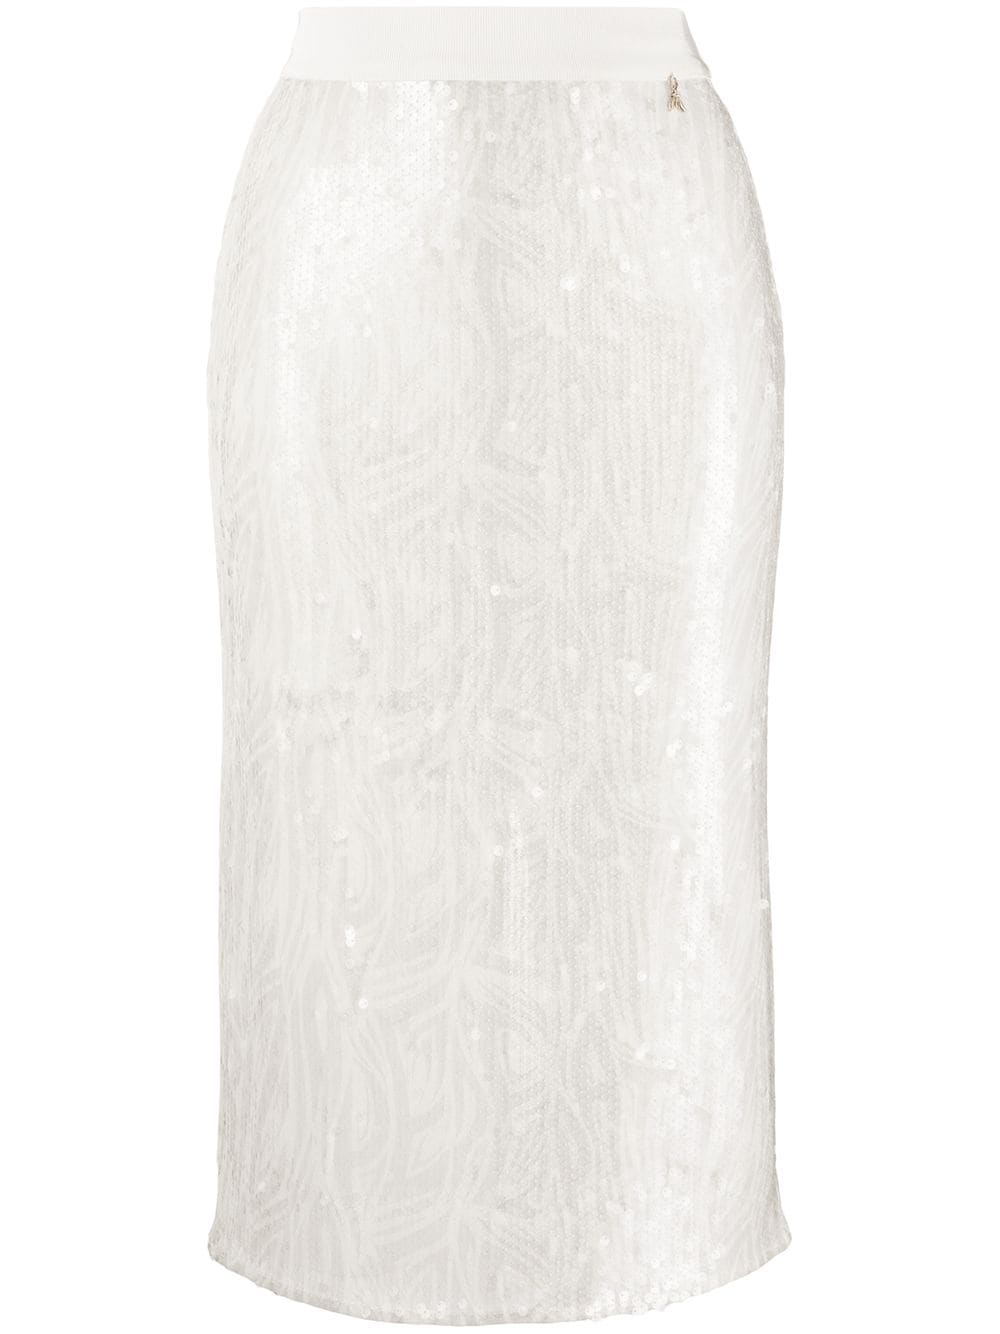 Patrizia Pepe sequin embellished pencil skirt